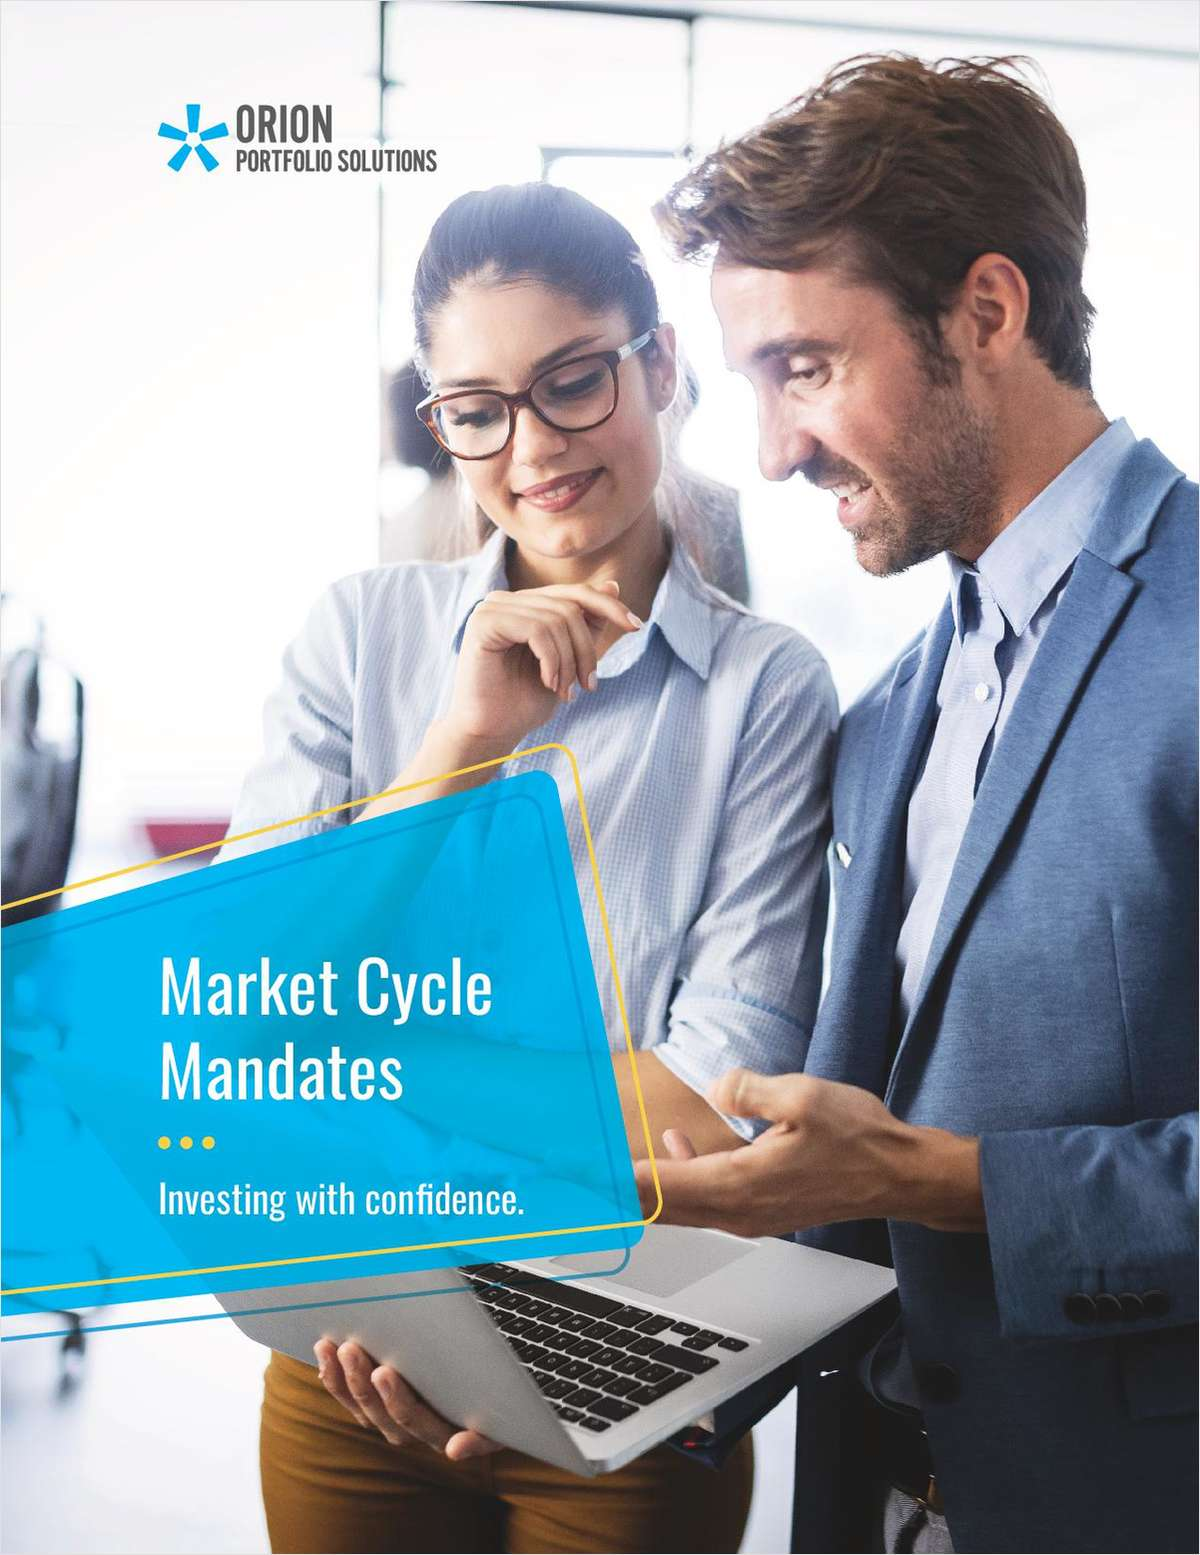 Market Cycle Mandates: Investing with Confidence